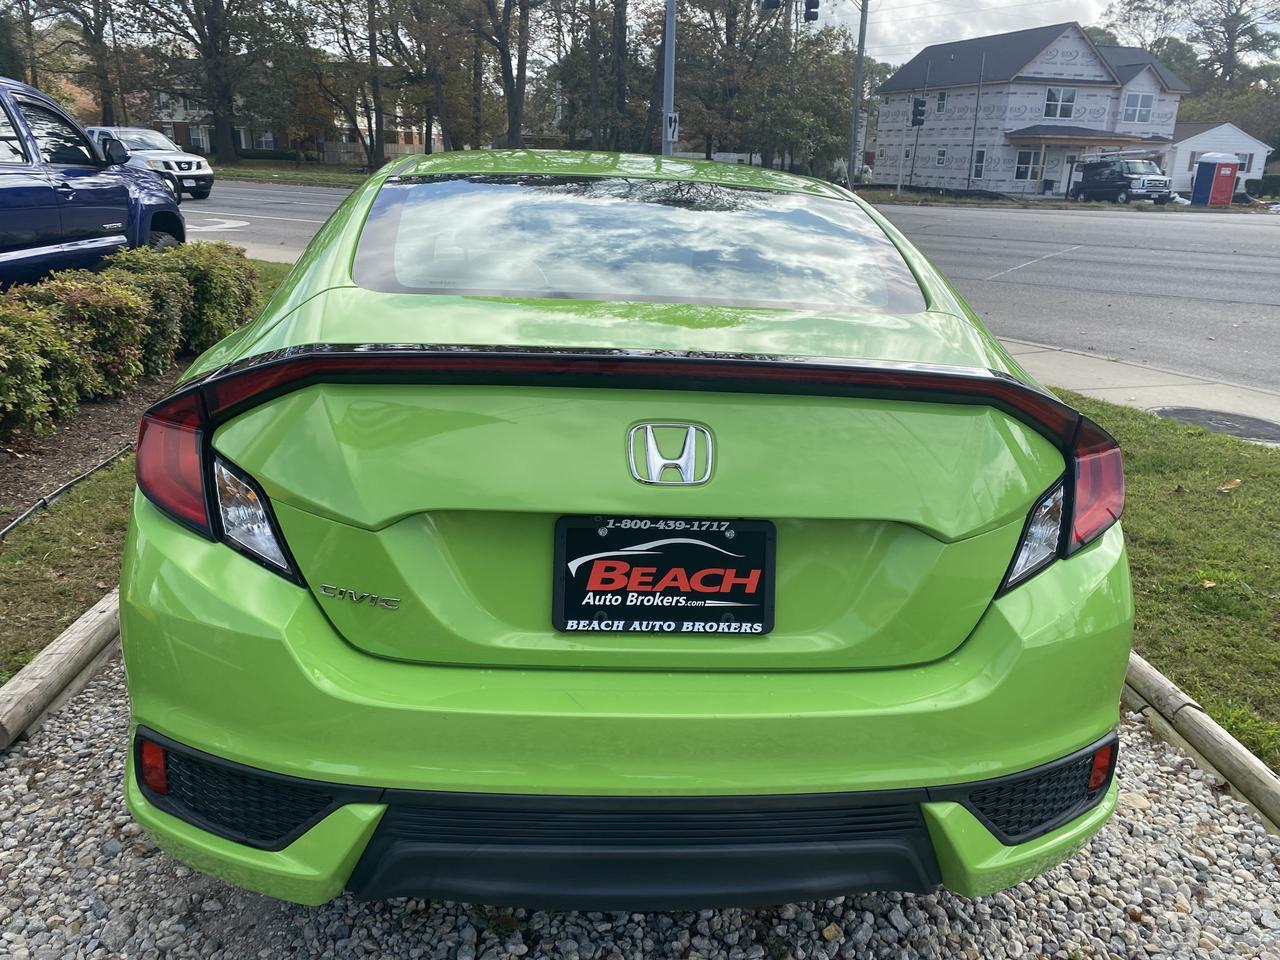 2016 HONDA CIVIC LX RARE COLOR LOOKS FANTASTIC!!!, WARRANTY, BACKUP CAM, CRUISE, A/C, KEYLESS ENTRY, CLEAN CARFAX! Norfolk VA